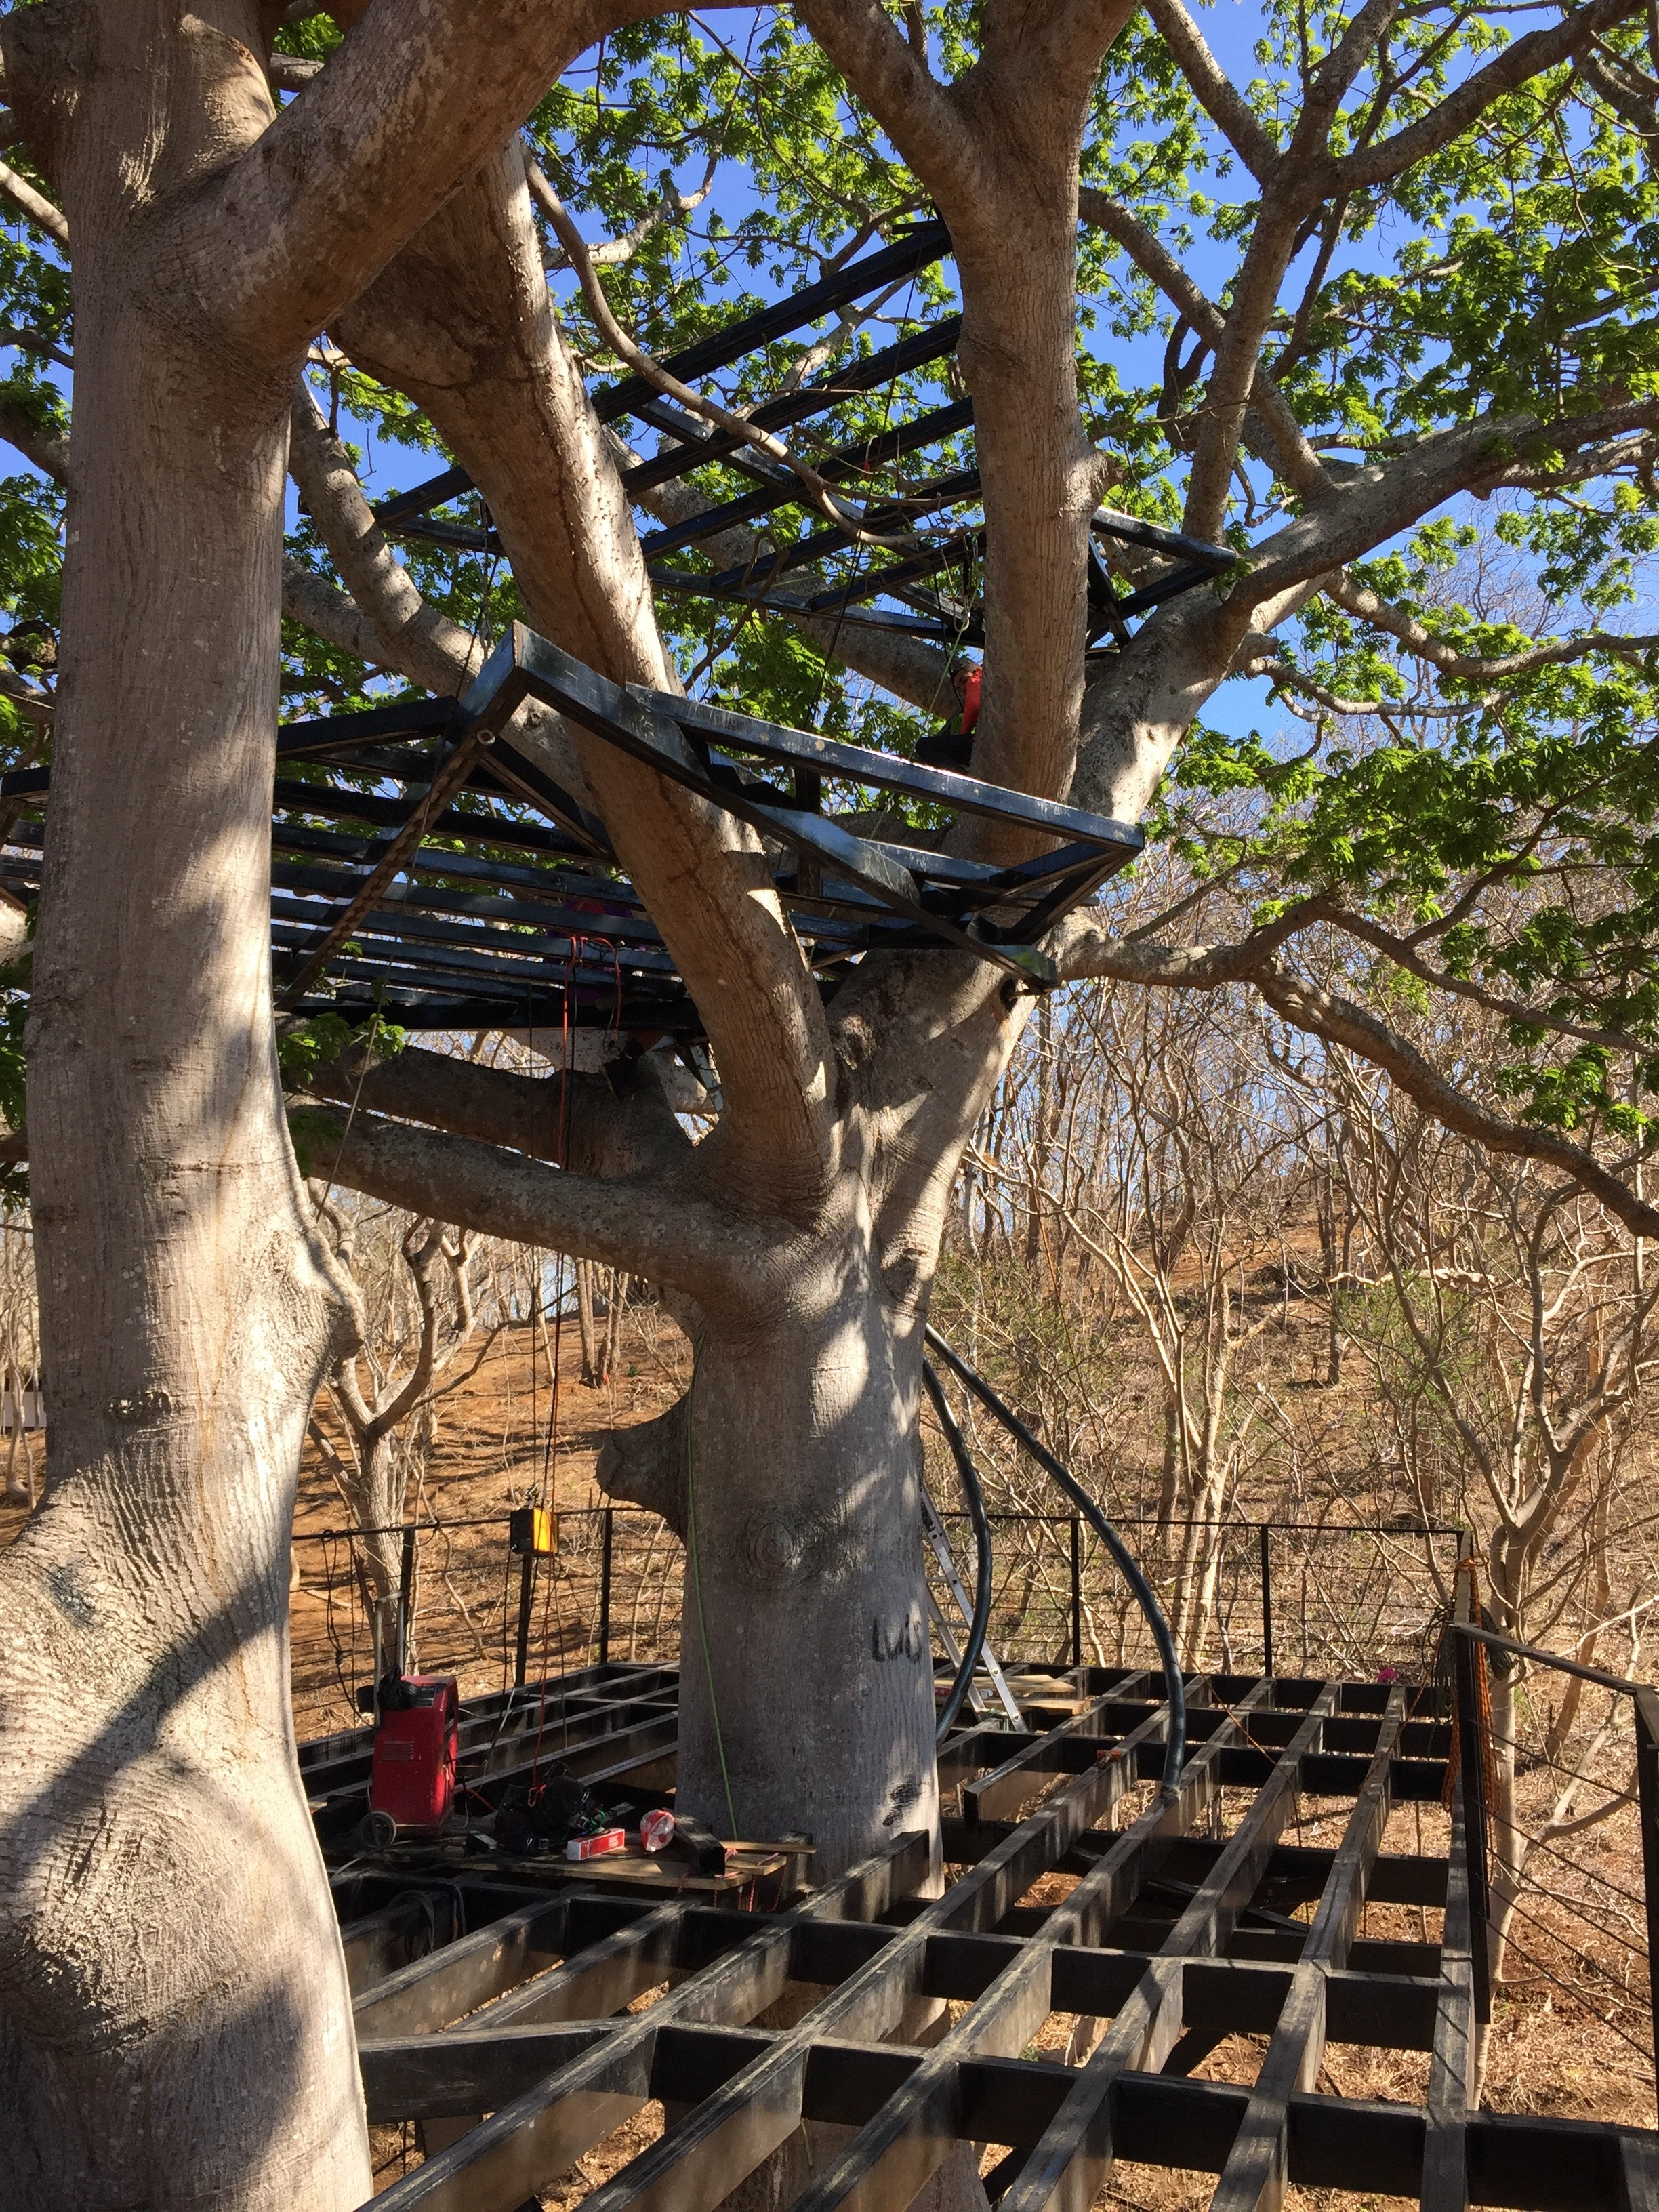 Tree House Plans For Two Trees wander goat travels – spikey trees, and steel beams: a nicaraguan